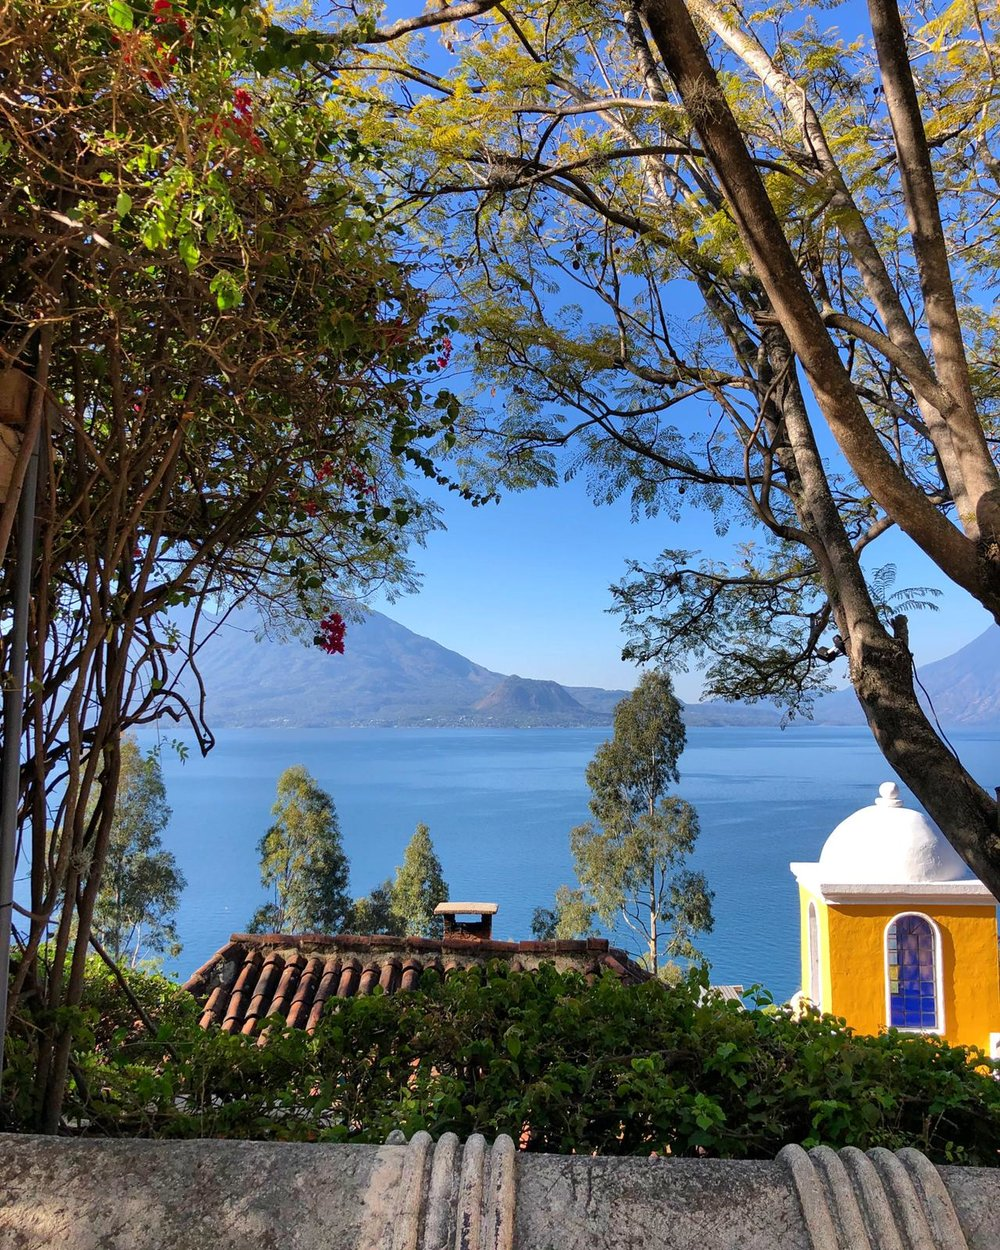 Guatemala's Lake Atitlán is home to a dozen Mayan communities.